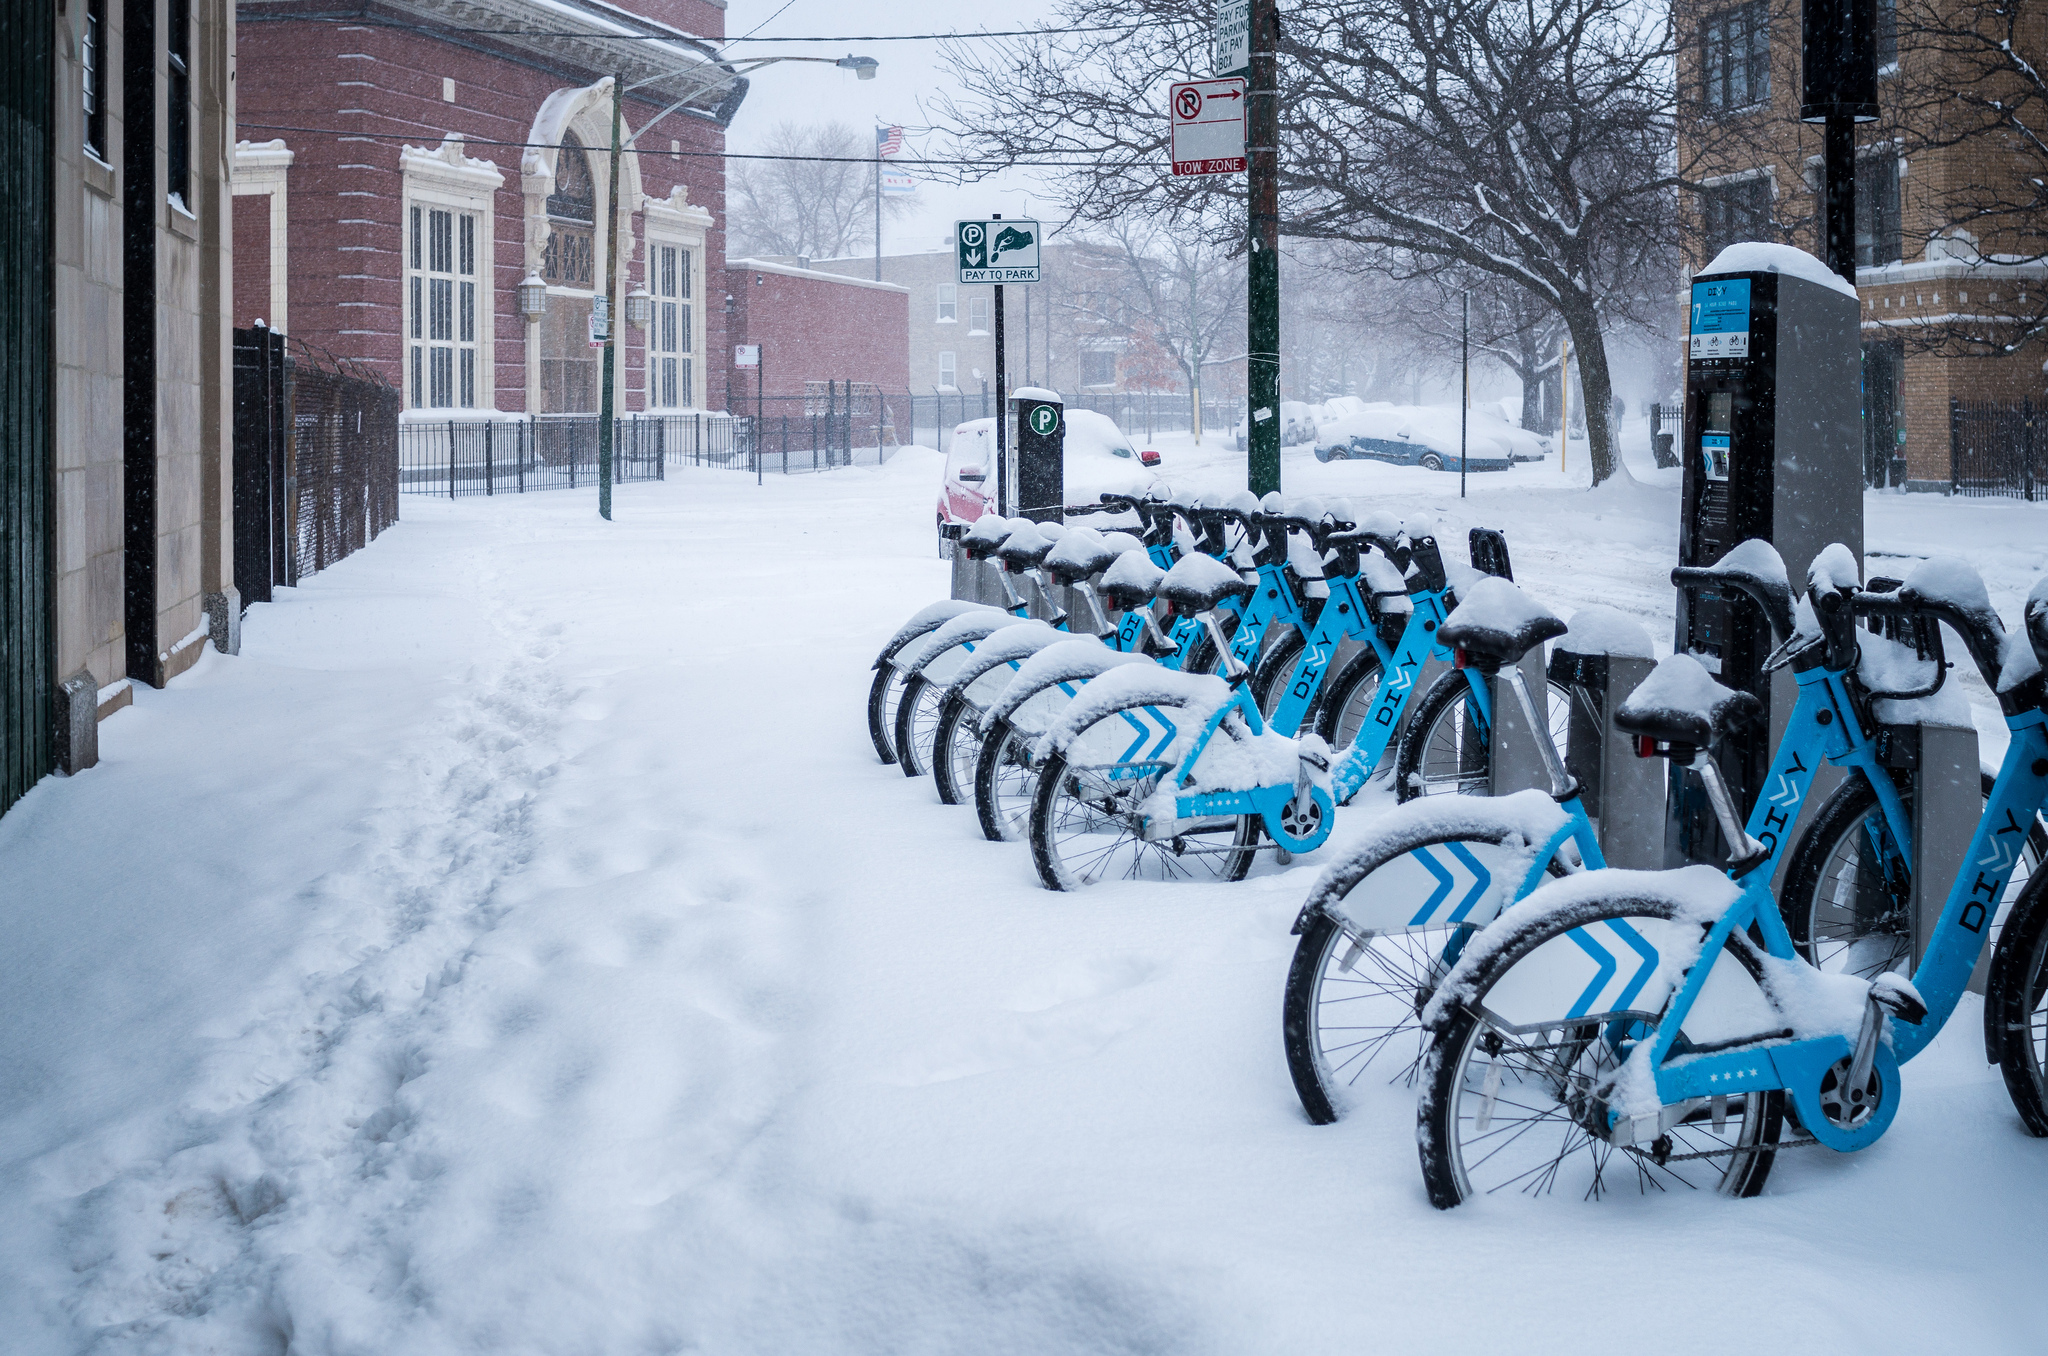 Divvy bikes in winter. Photo by Andrew Seaman via Flickr Creative Commons.